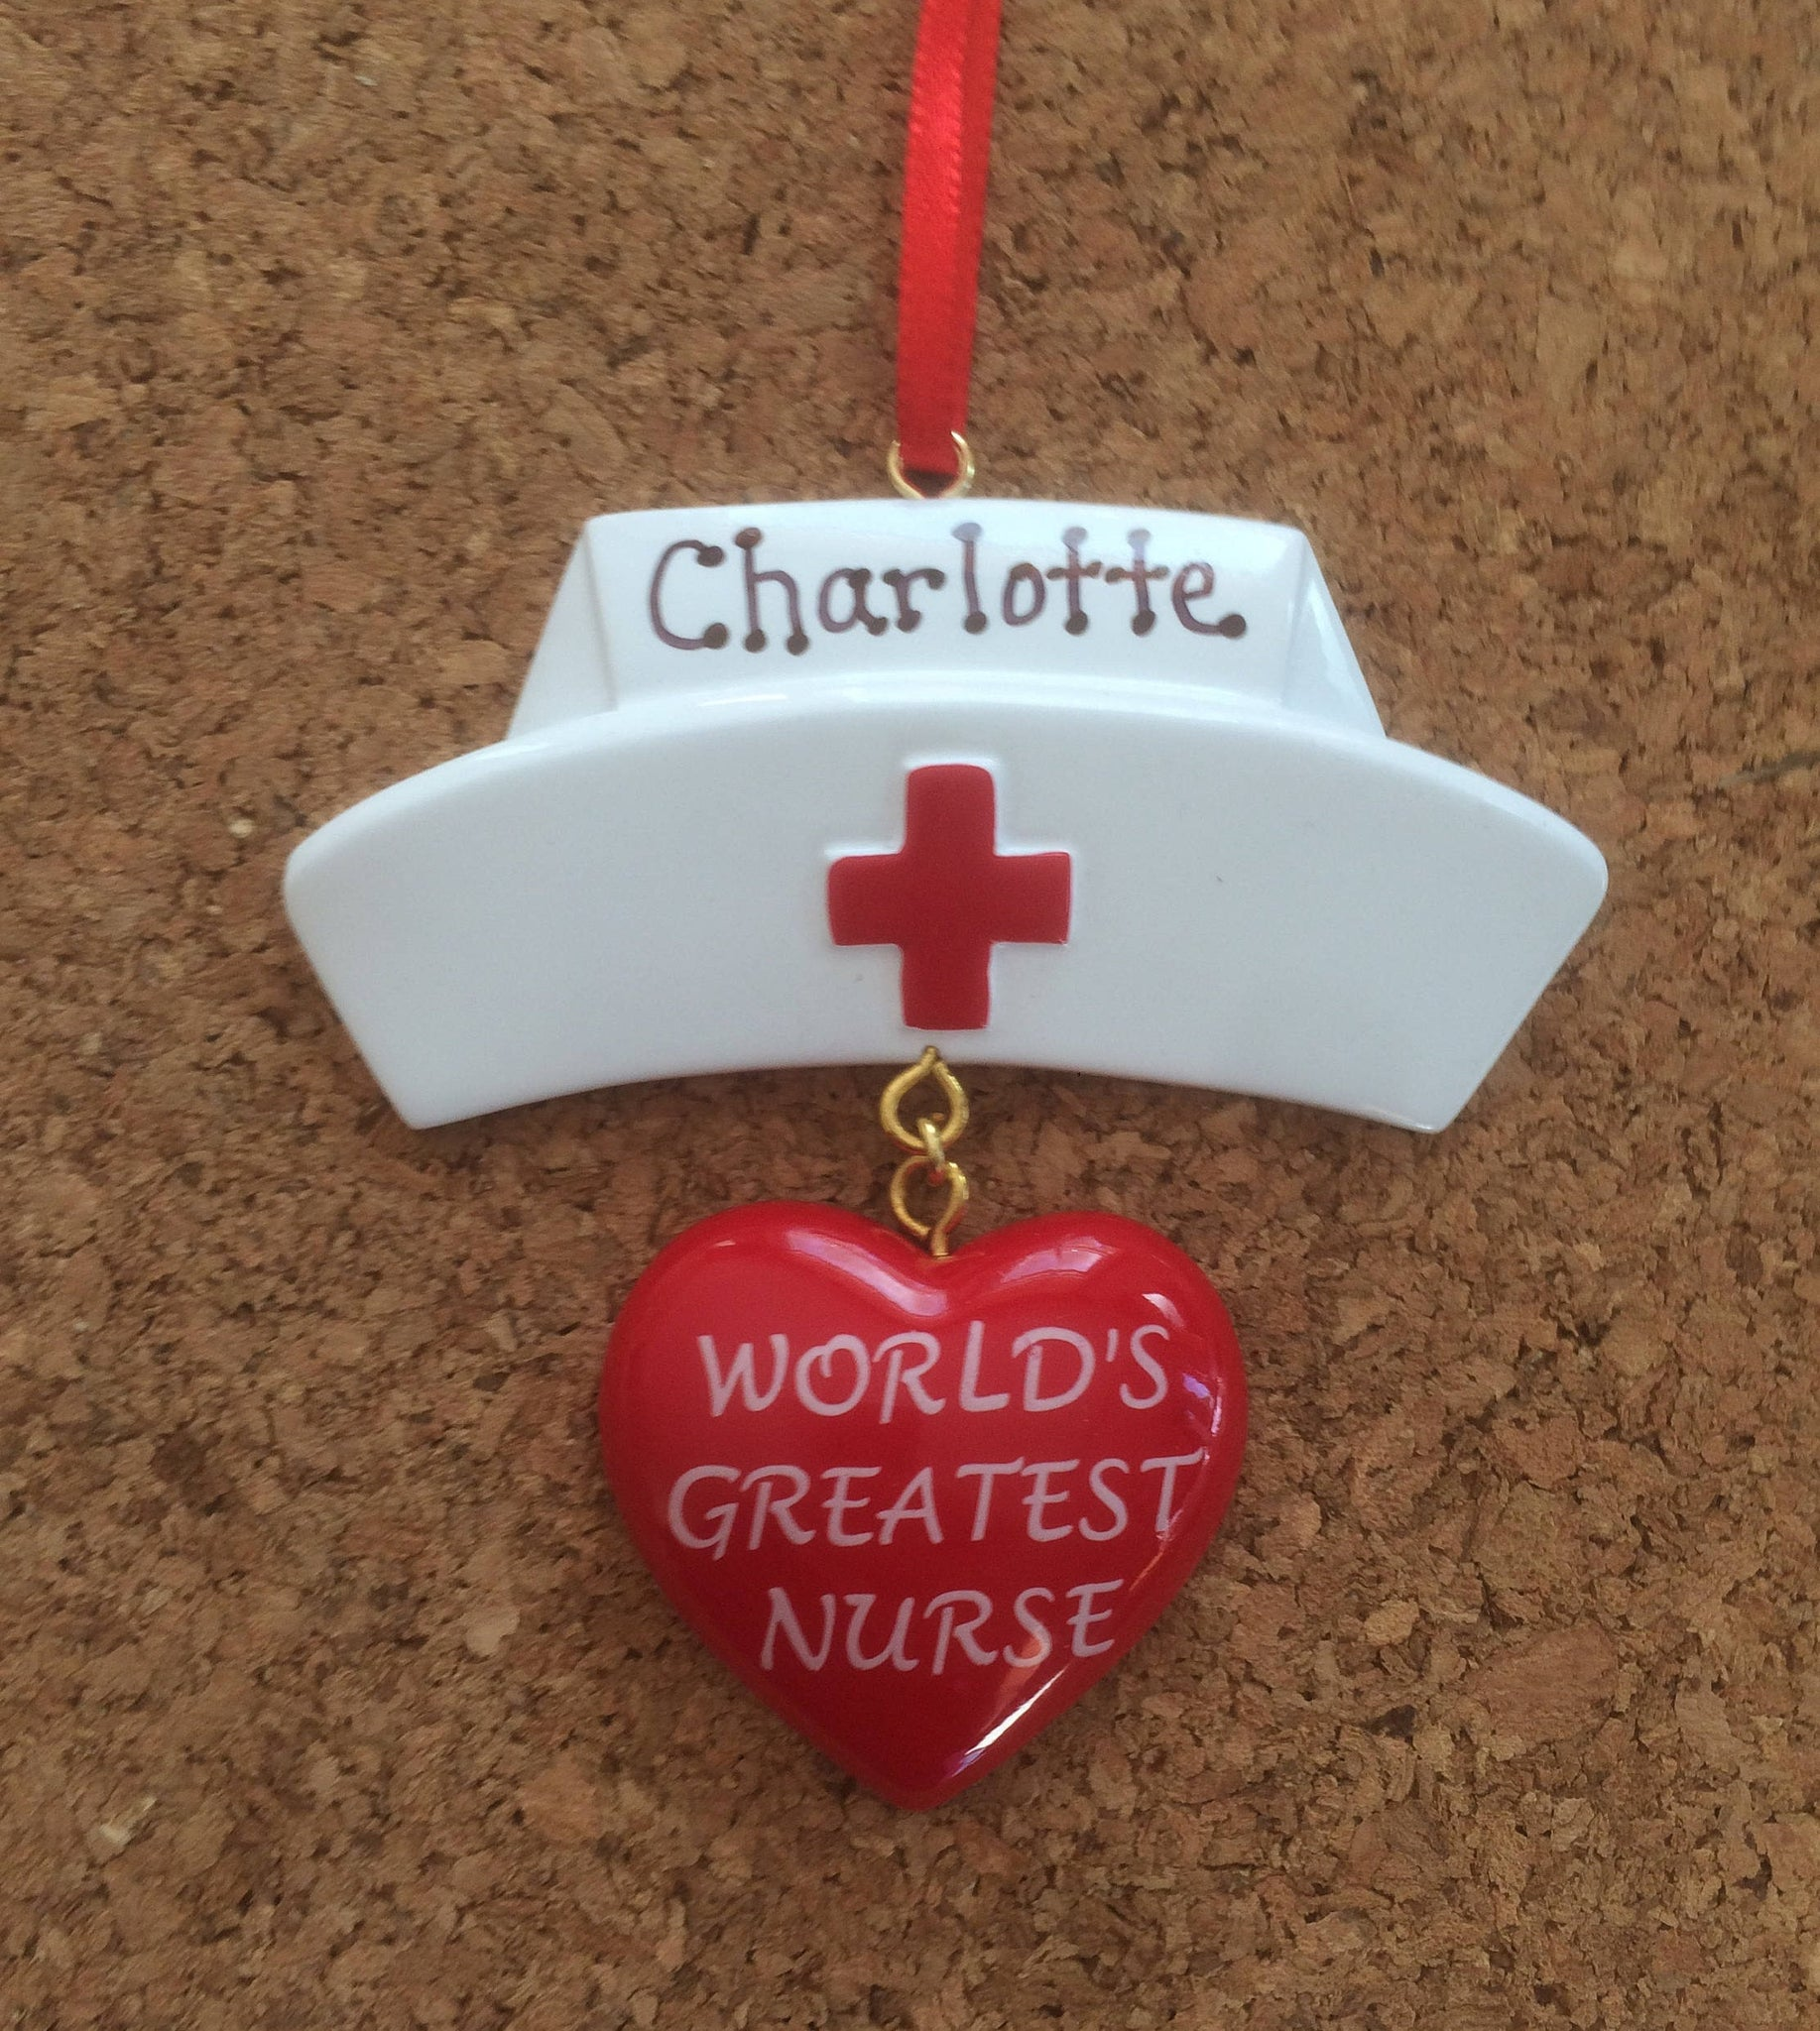 Gift for Nurses - Graduates-World's Greatest Nurse Cap- Personalized Chritmas Ornament